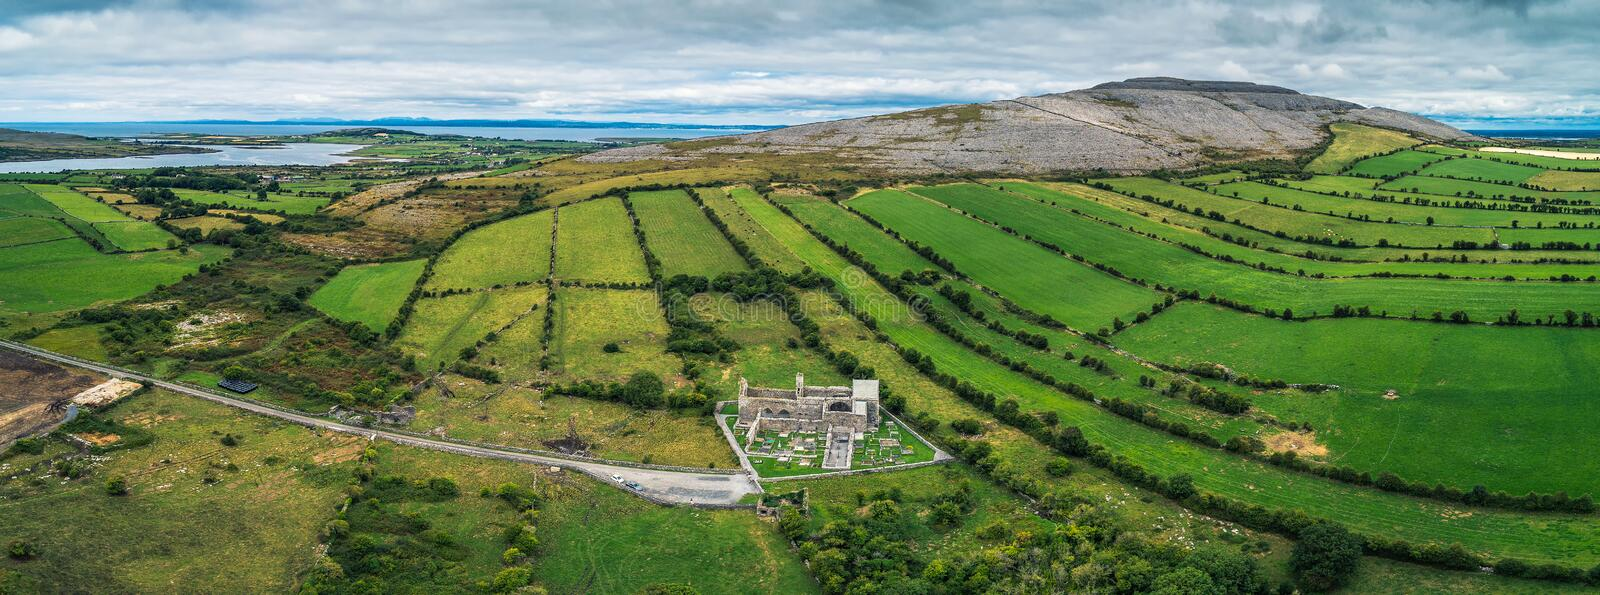 Aerial panorama of Corcomroe Abbey ruins and its cemetery. Located in the Burren region of County Clare, Ireland stock images